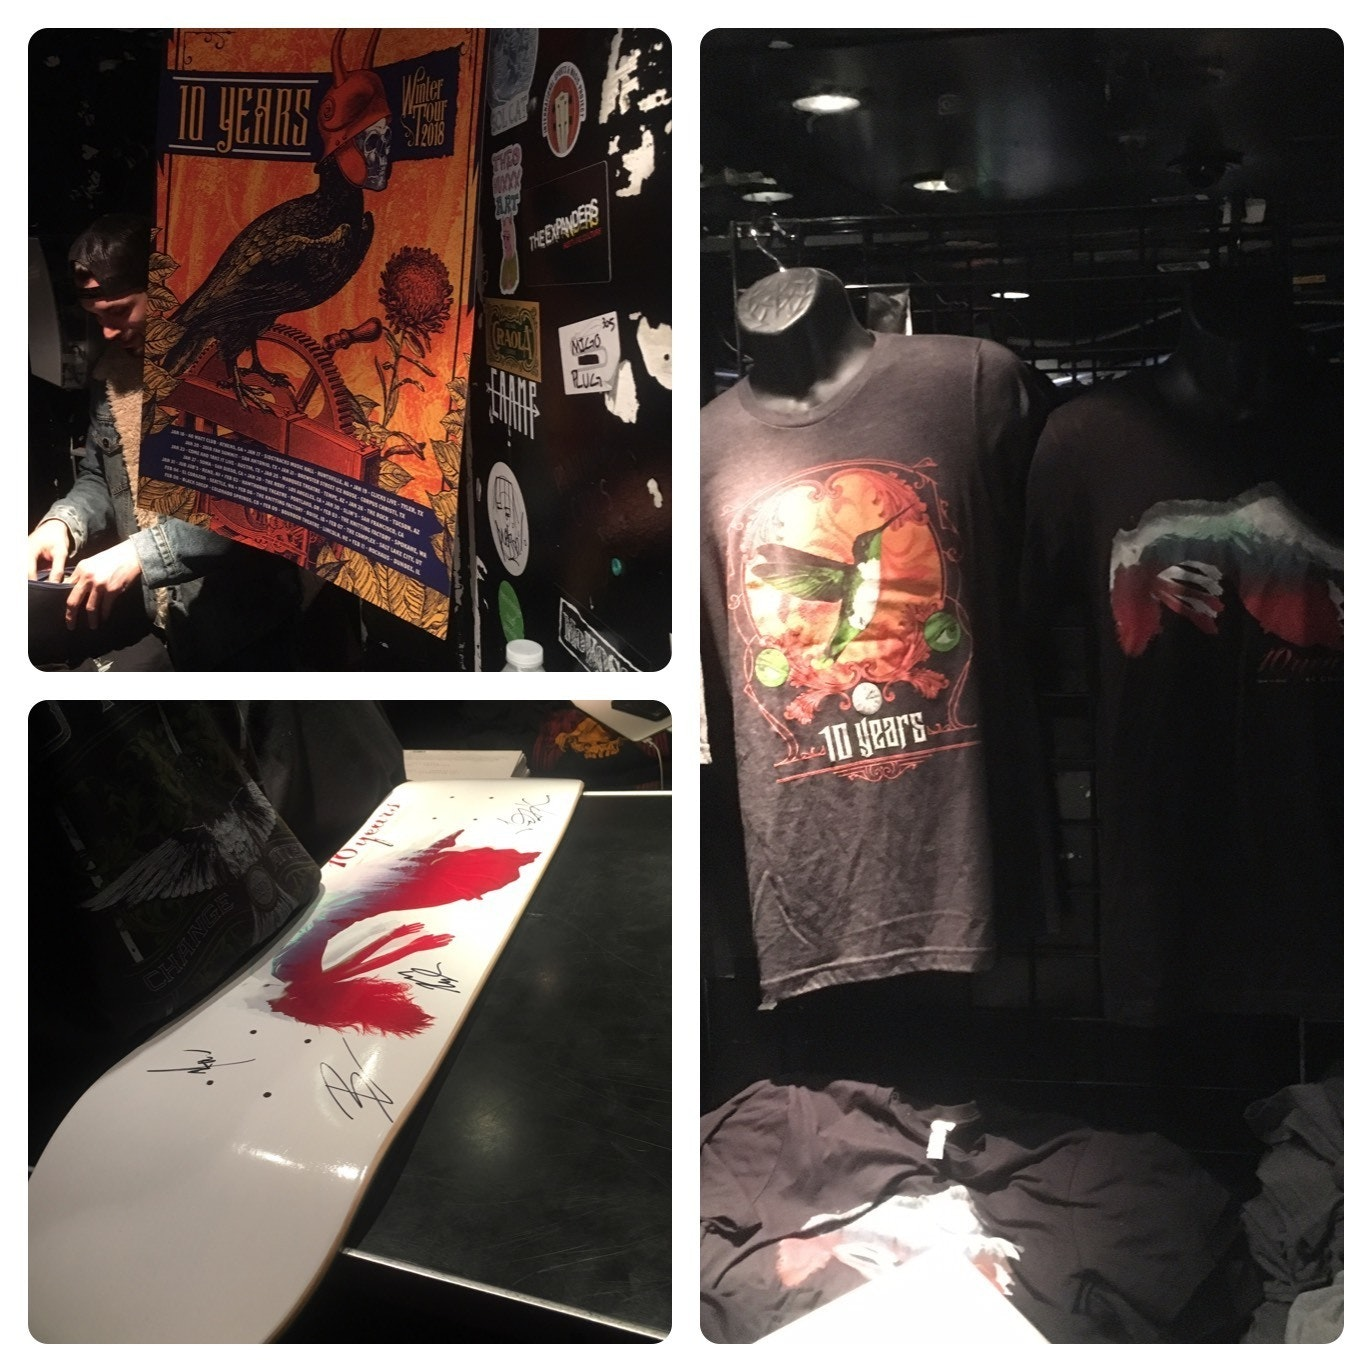 10 years merch: Roxy Los Angeles 1 29 18 the poster and the